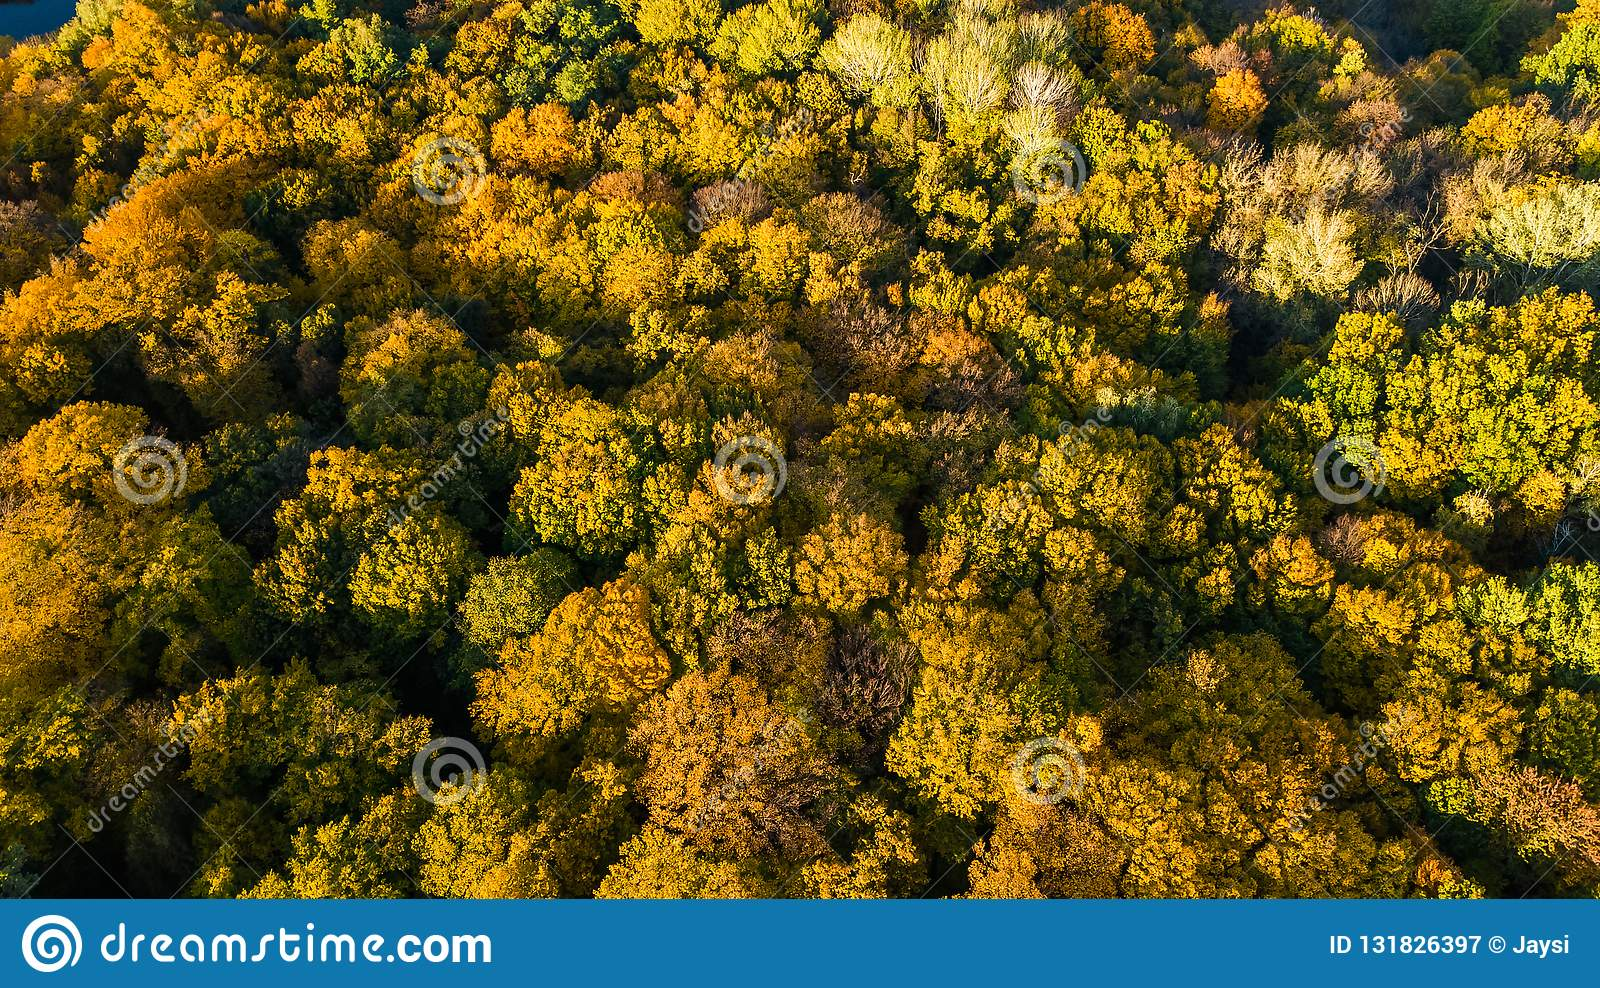 Golden autumn background, aerial drone view of beautiful forest landscape with yellow trees from above